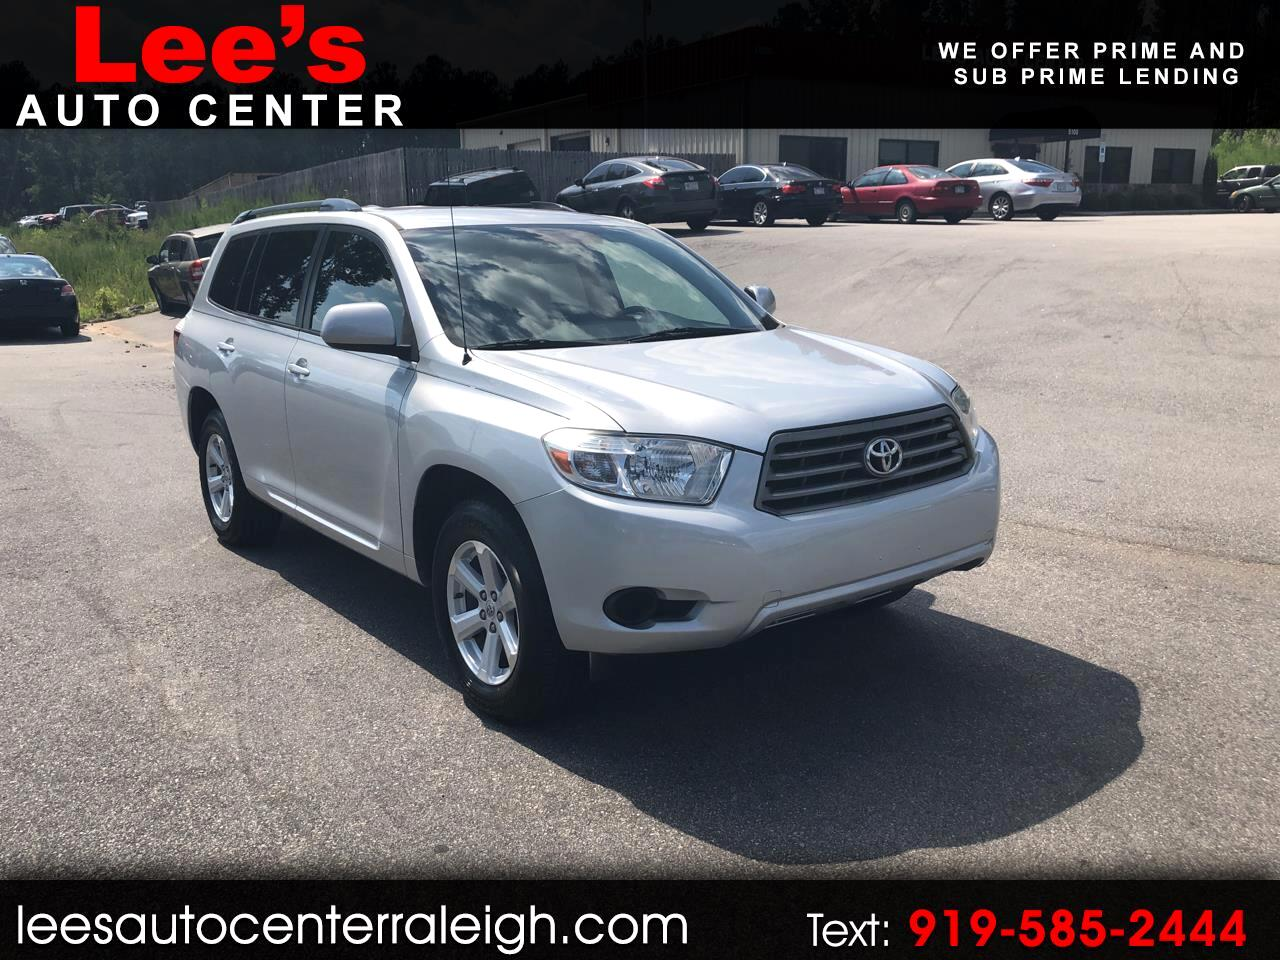 2010 Toyota Highlander FWD 4dr V6 Base (Natl)